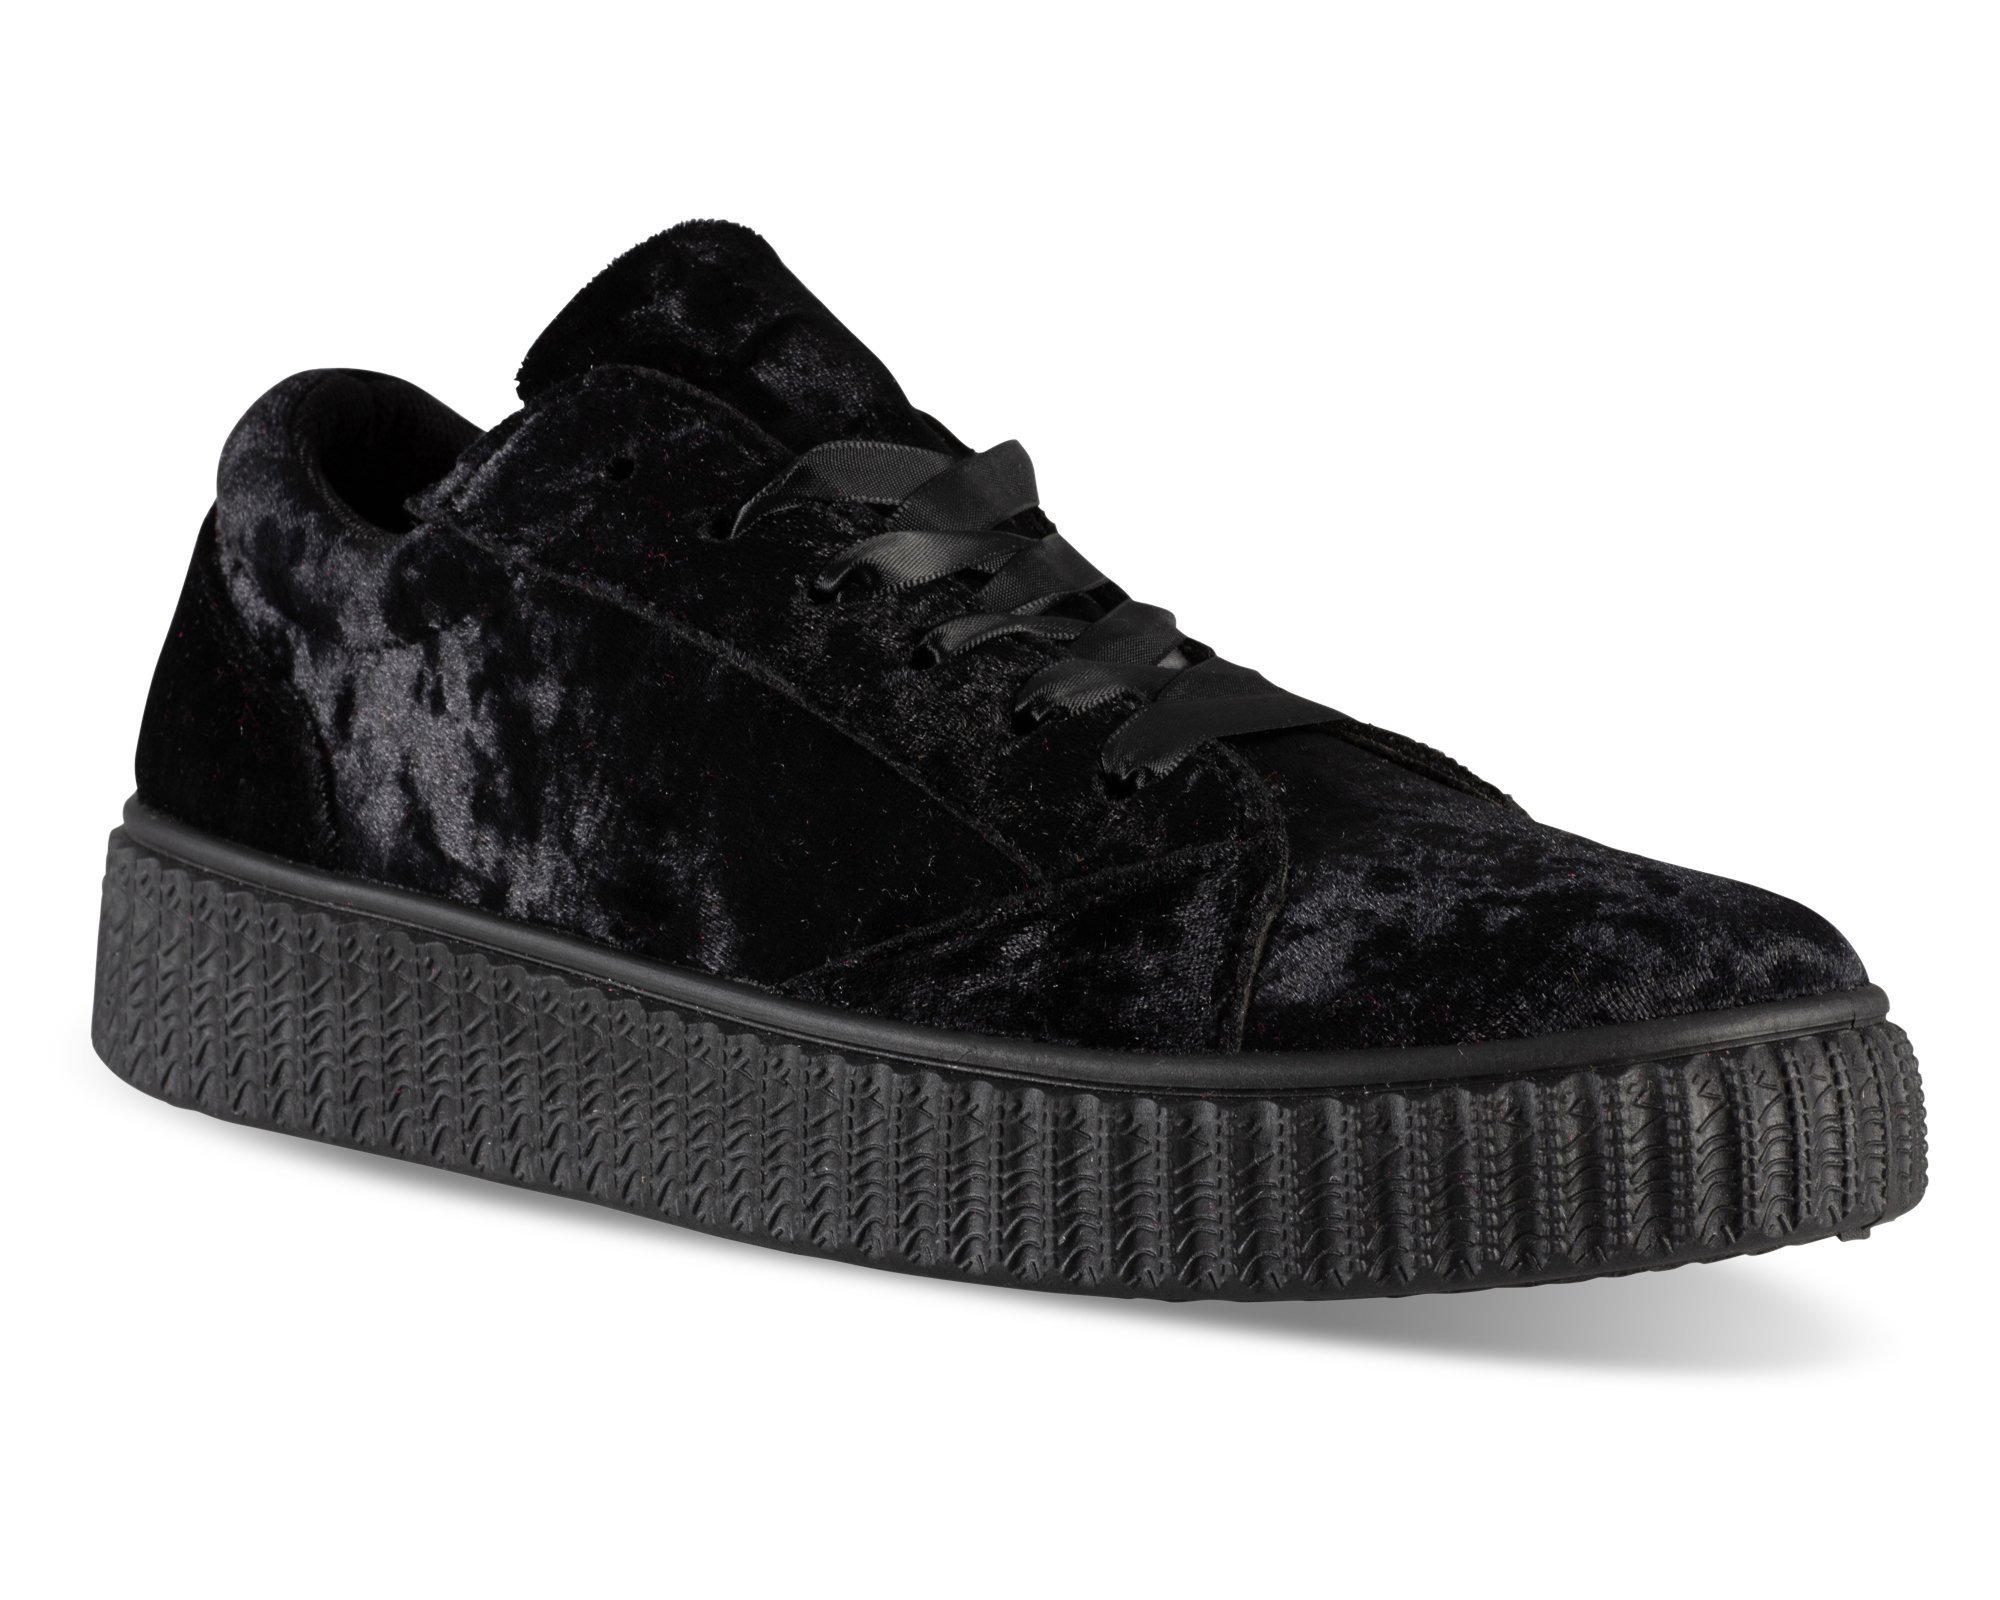 Twisted Women's Olivia Velvet Platform Creeper Fashion Sneaker - OLIVIA02 Black, Size 9